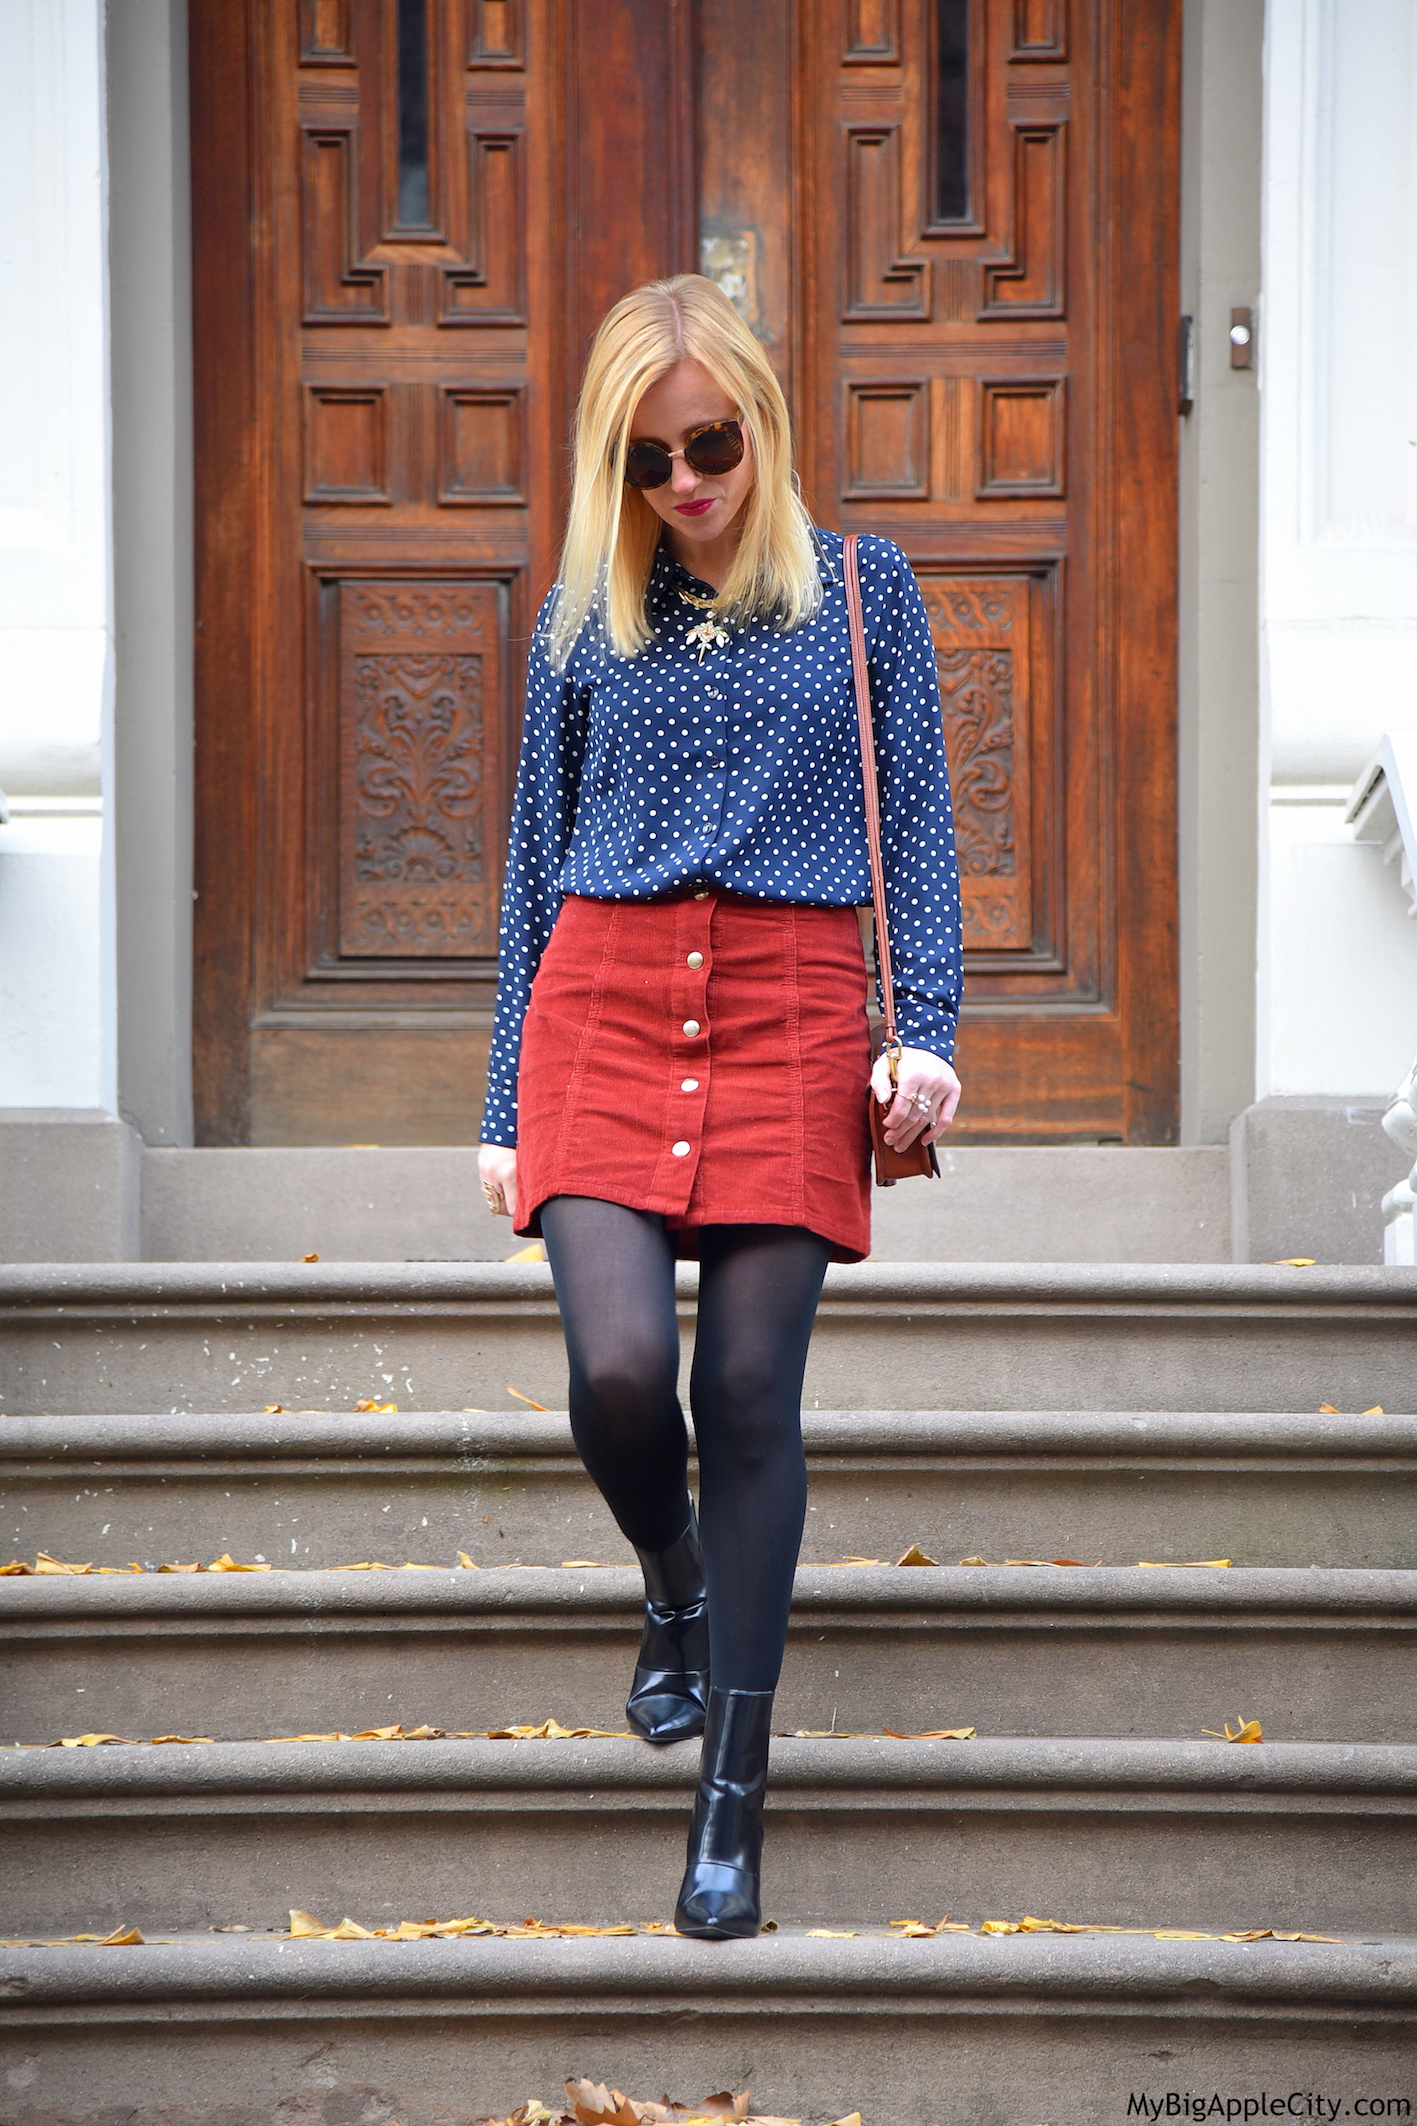 OOTD-New-York-Fashion-Blogger-Topshop-Look